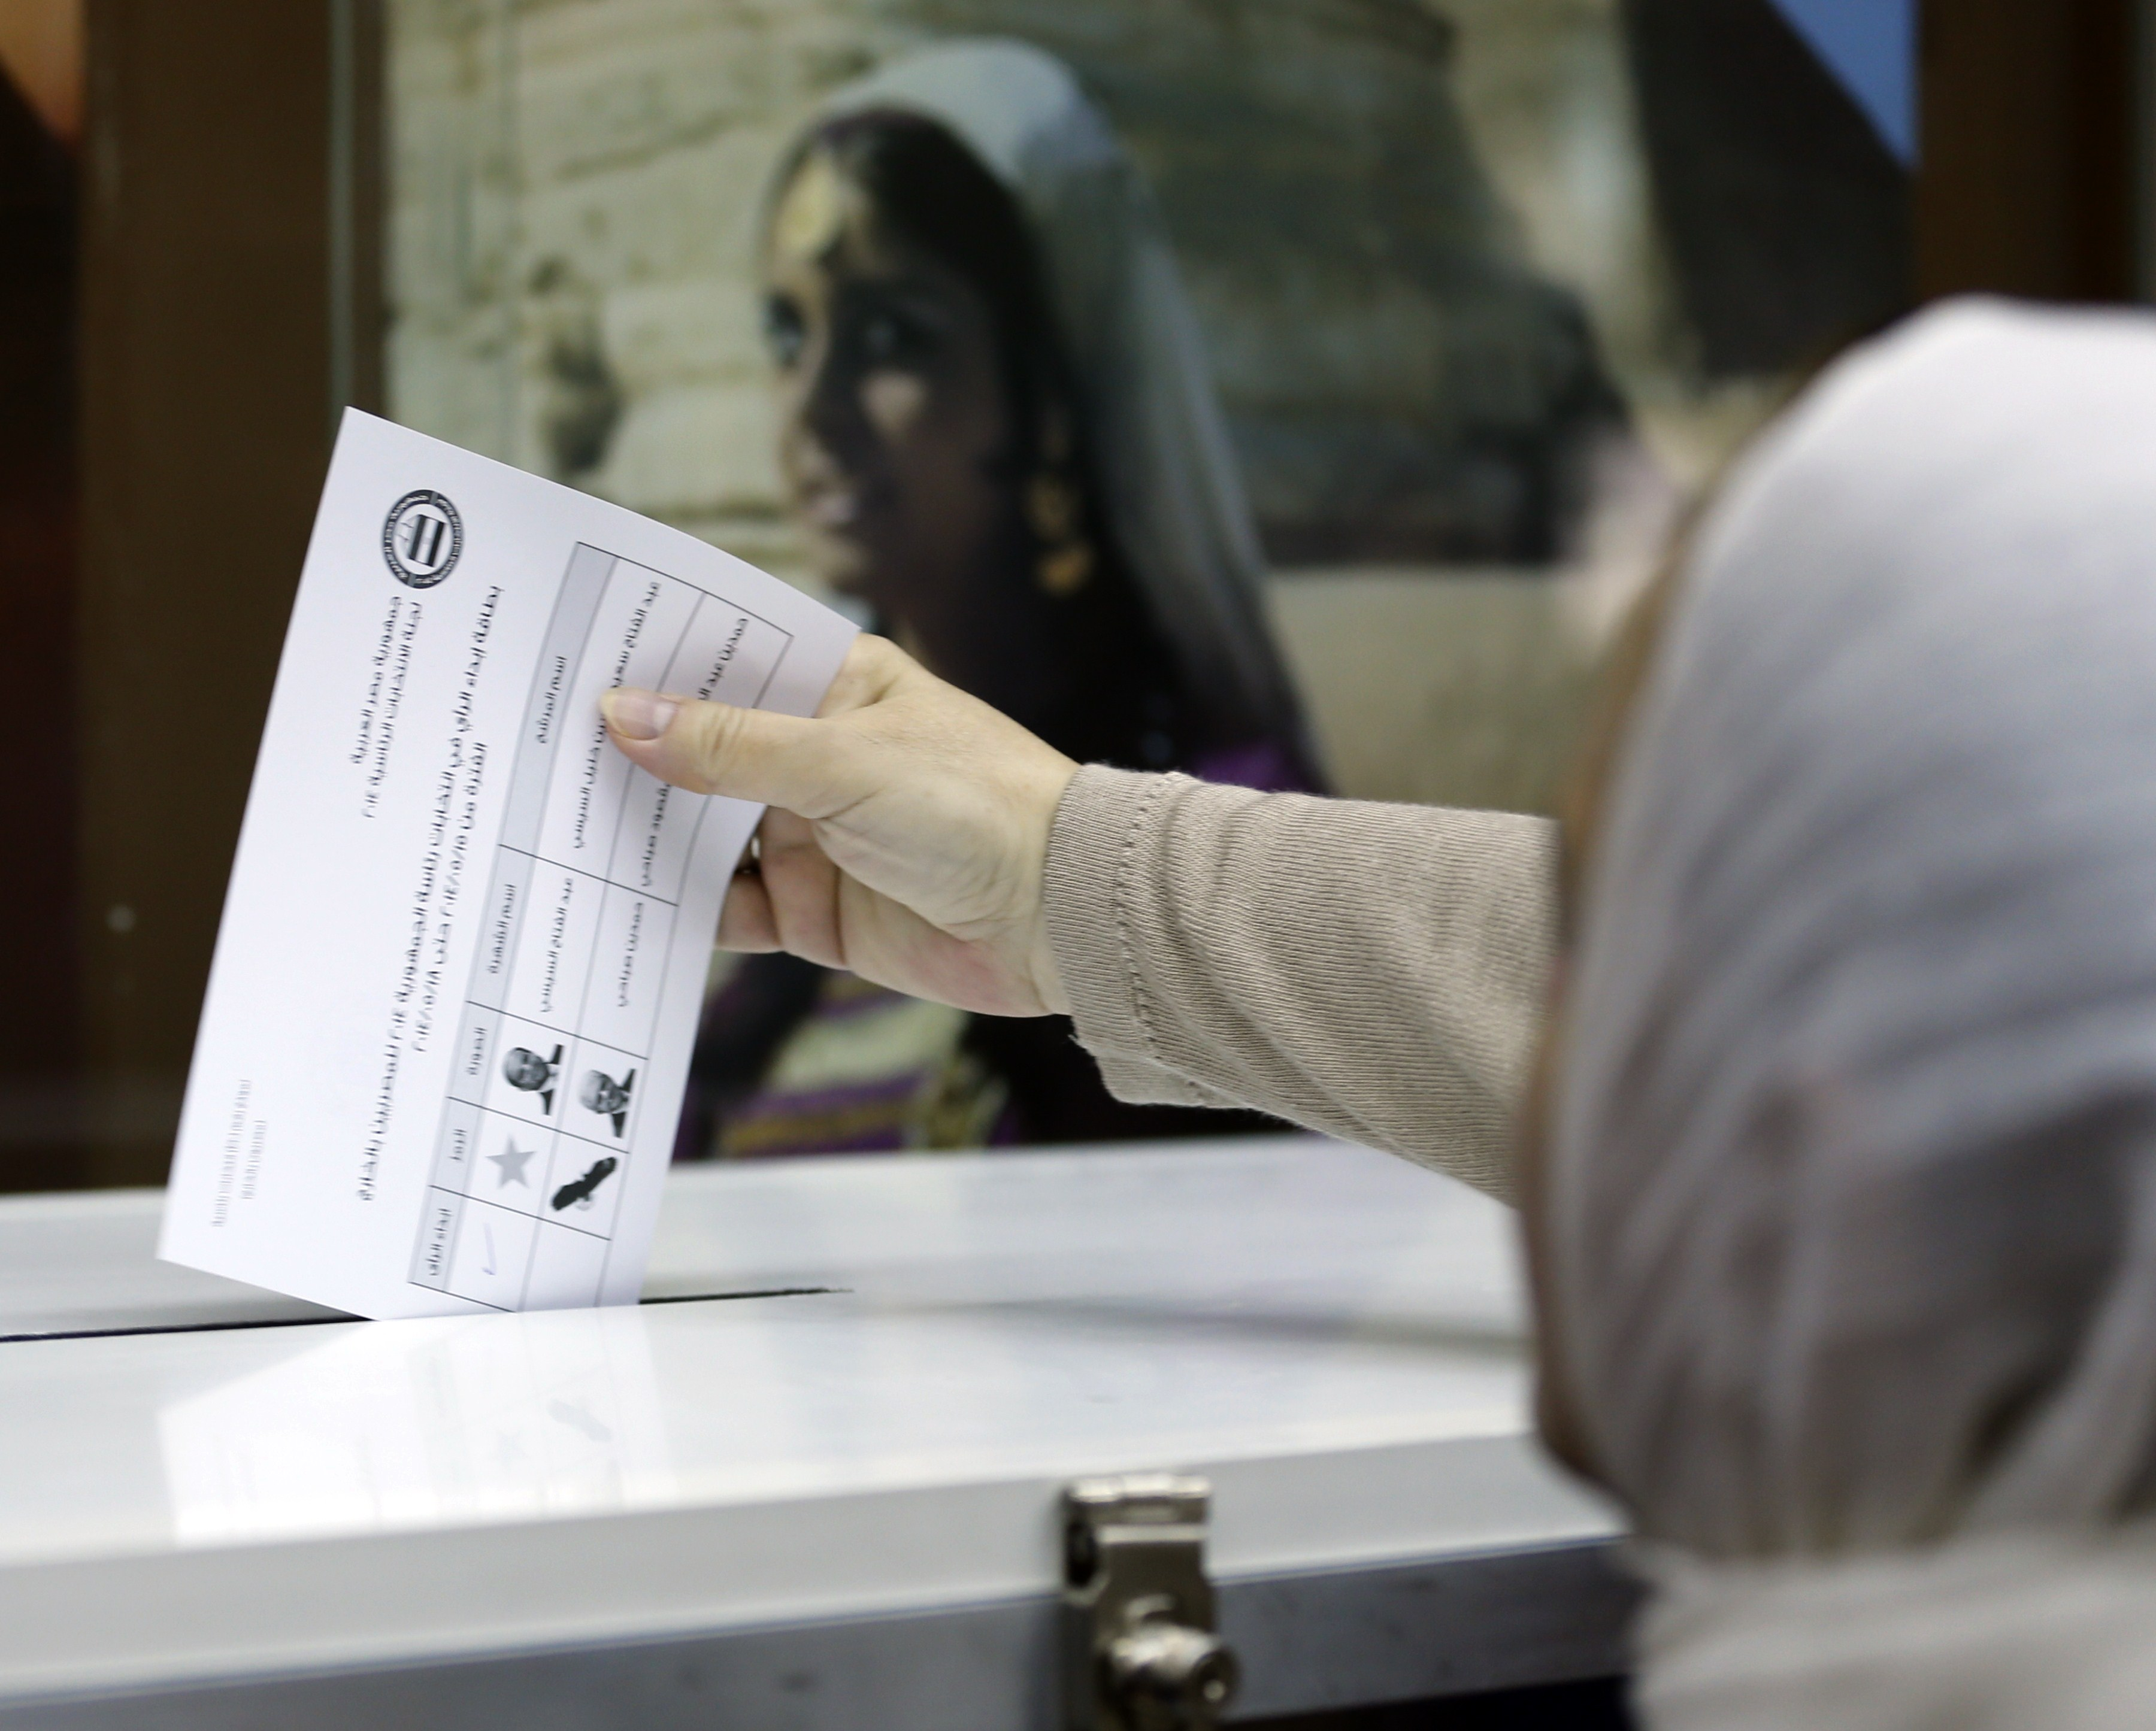 An Egyptian national residing in the United Arab Emirates casts her vote the Egyptian embassy in Dubai, on May 15, 2014.  Ex-army chief and leading presidential candidate Abdel Fattah al-Sisi is expected to win the May 26-27 election against his only rival, leftist Hamdeen Sabbahi, amid calls for a strong leader who can restore stability following the ousting of elected Islamist president Mohamed Morsi in July.    (AFP PHOTO/KARIM SAHIB)